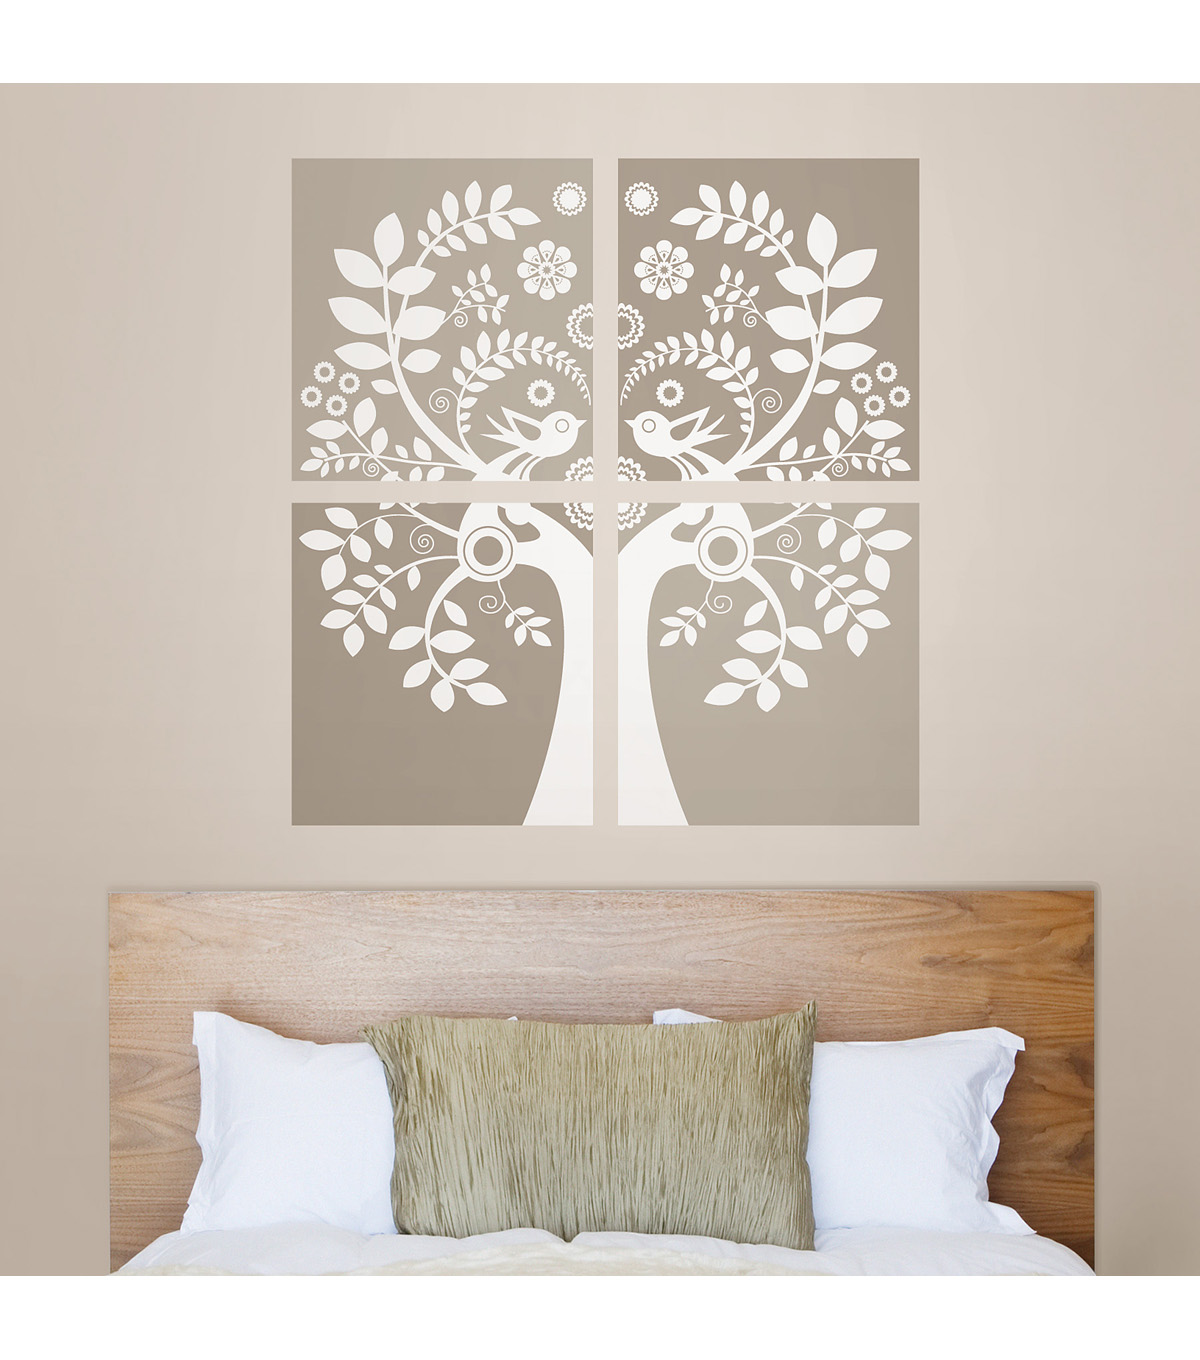 Wall Pops Love Birds Wall Art Decal Kit, 4 Piece Set